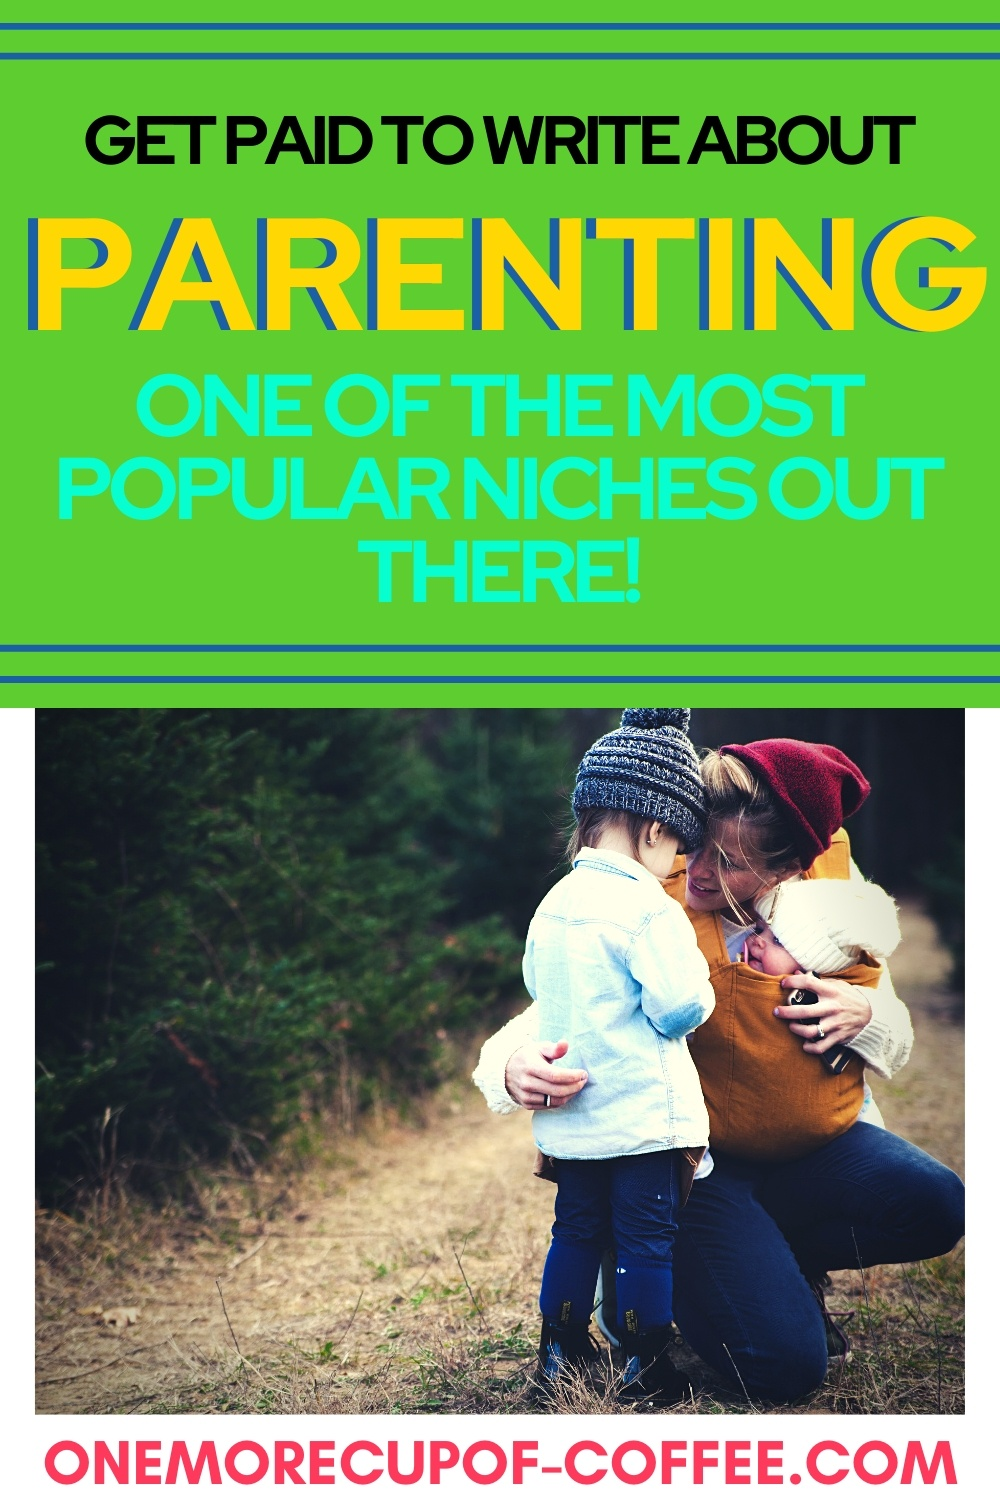 Mother holding baby and hugging toddler to represent writing about parenting